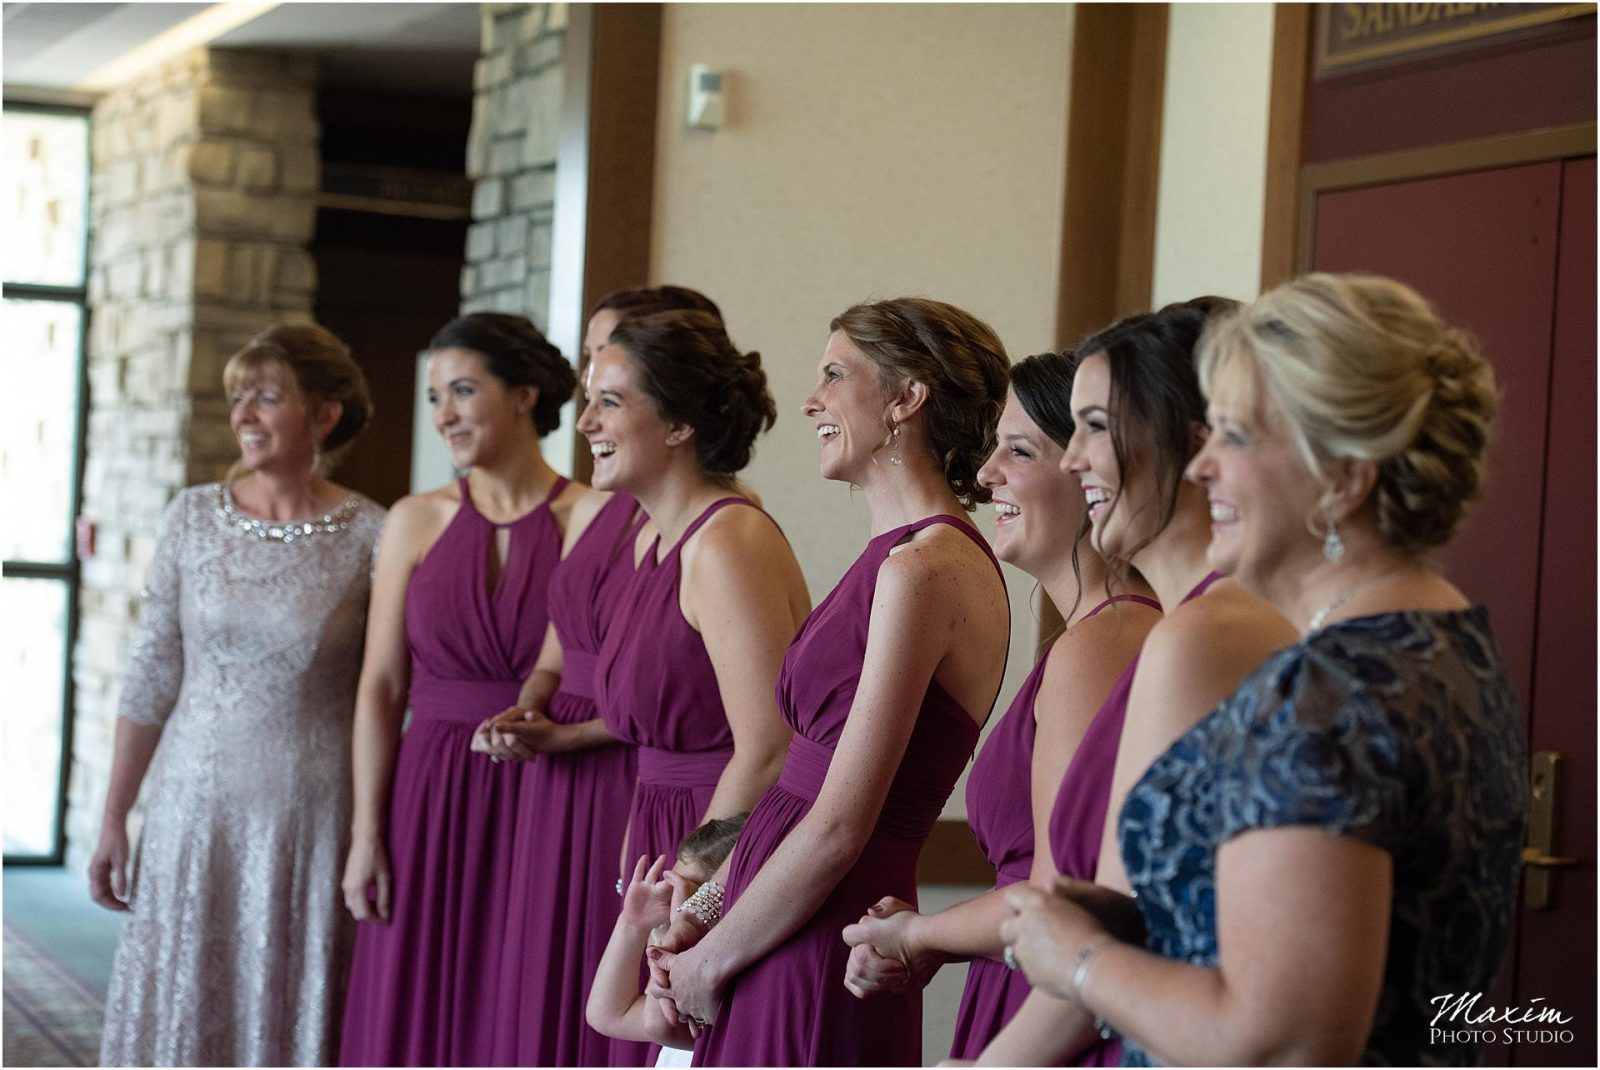 Oasis Conference Center, Cincinnati Wedding Photography, Bride reveal bridesmaids